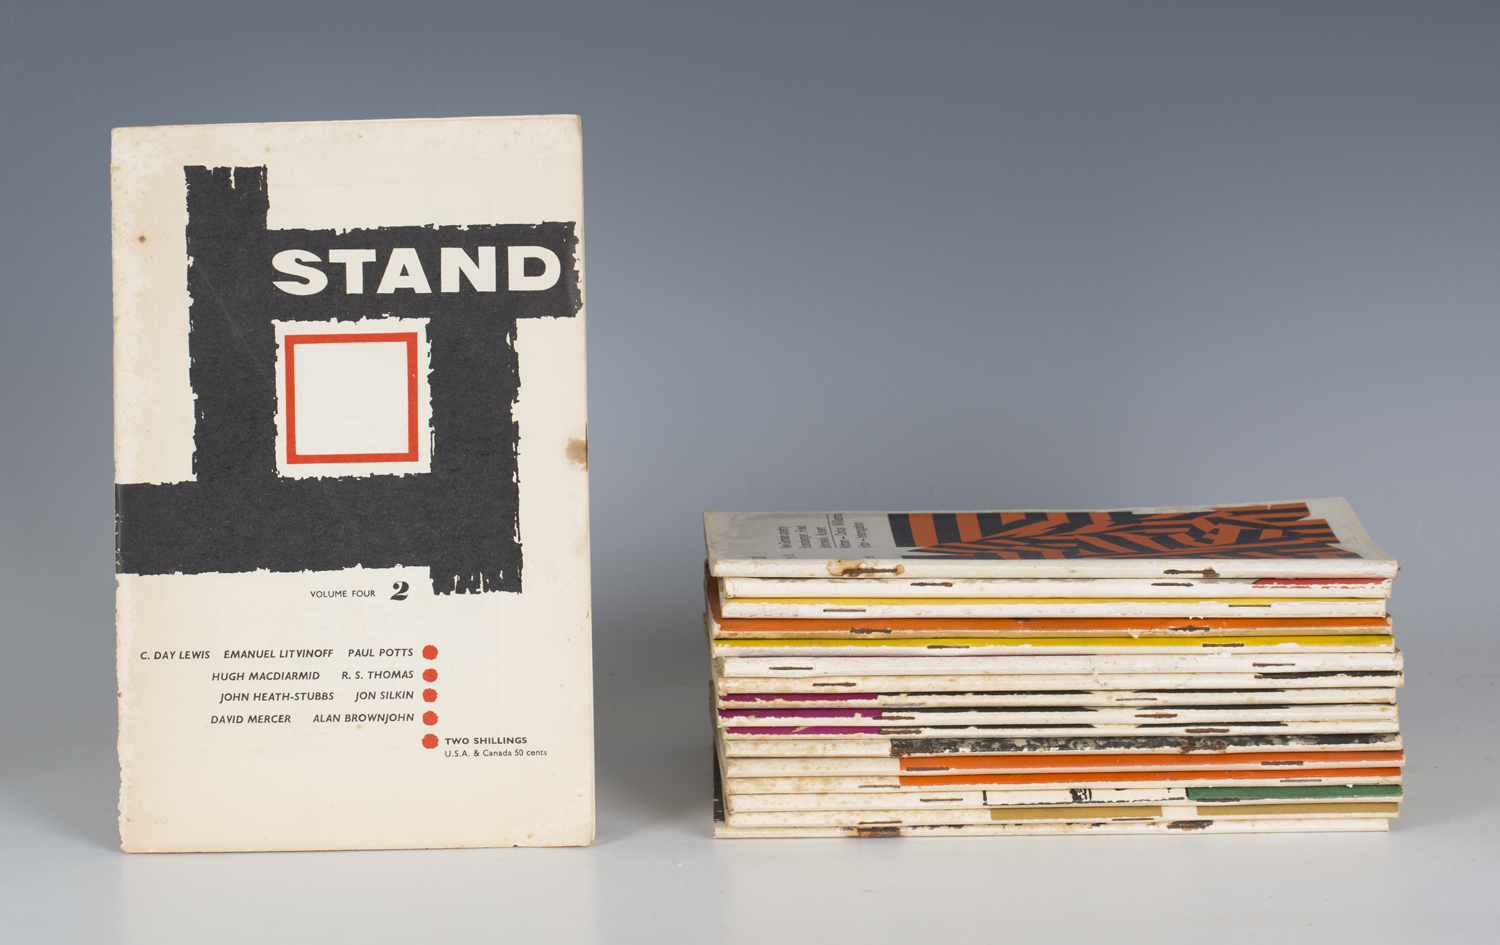 Lot 3151 - POETRY. - Jon SILKIN (editor). Stand Magazine. Leeds and Newcastle: Anthony Blond, 1960-2000. 151